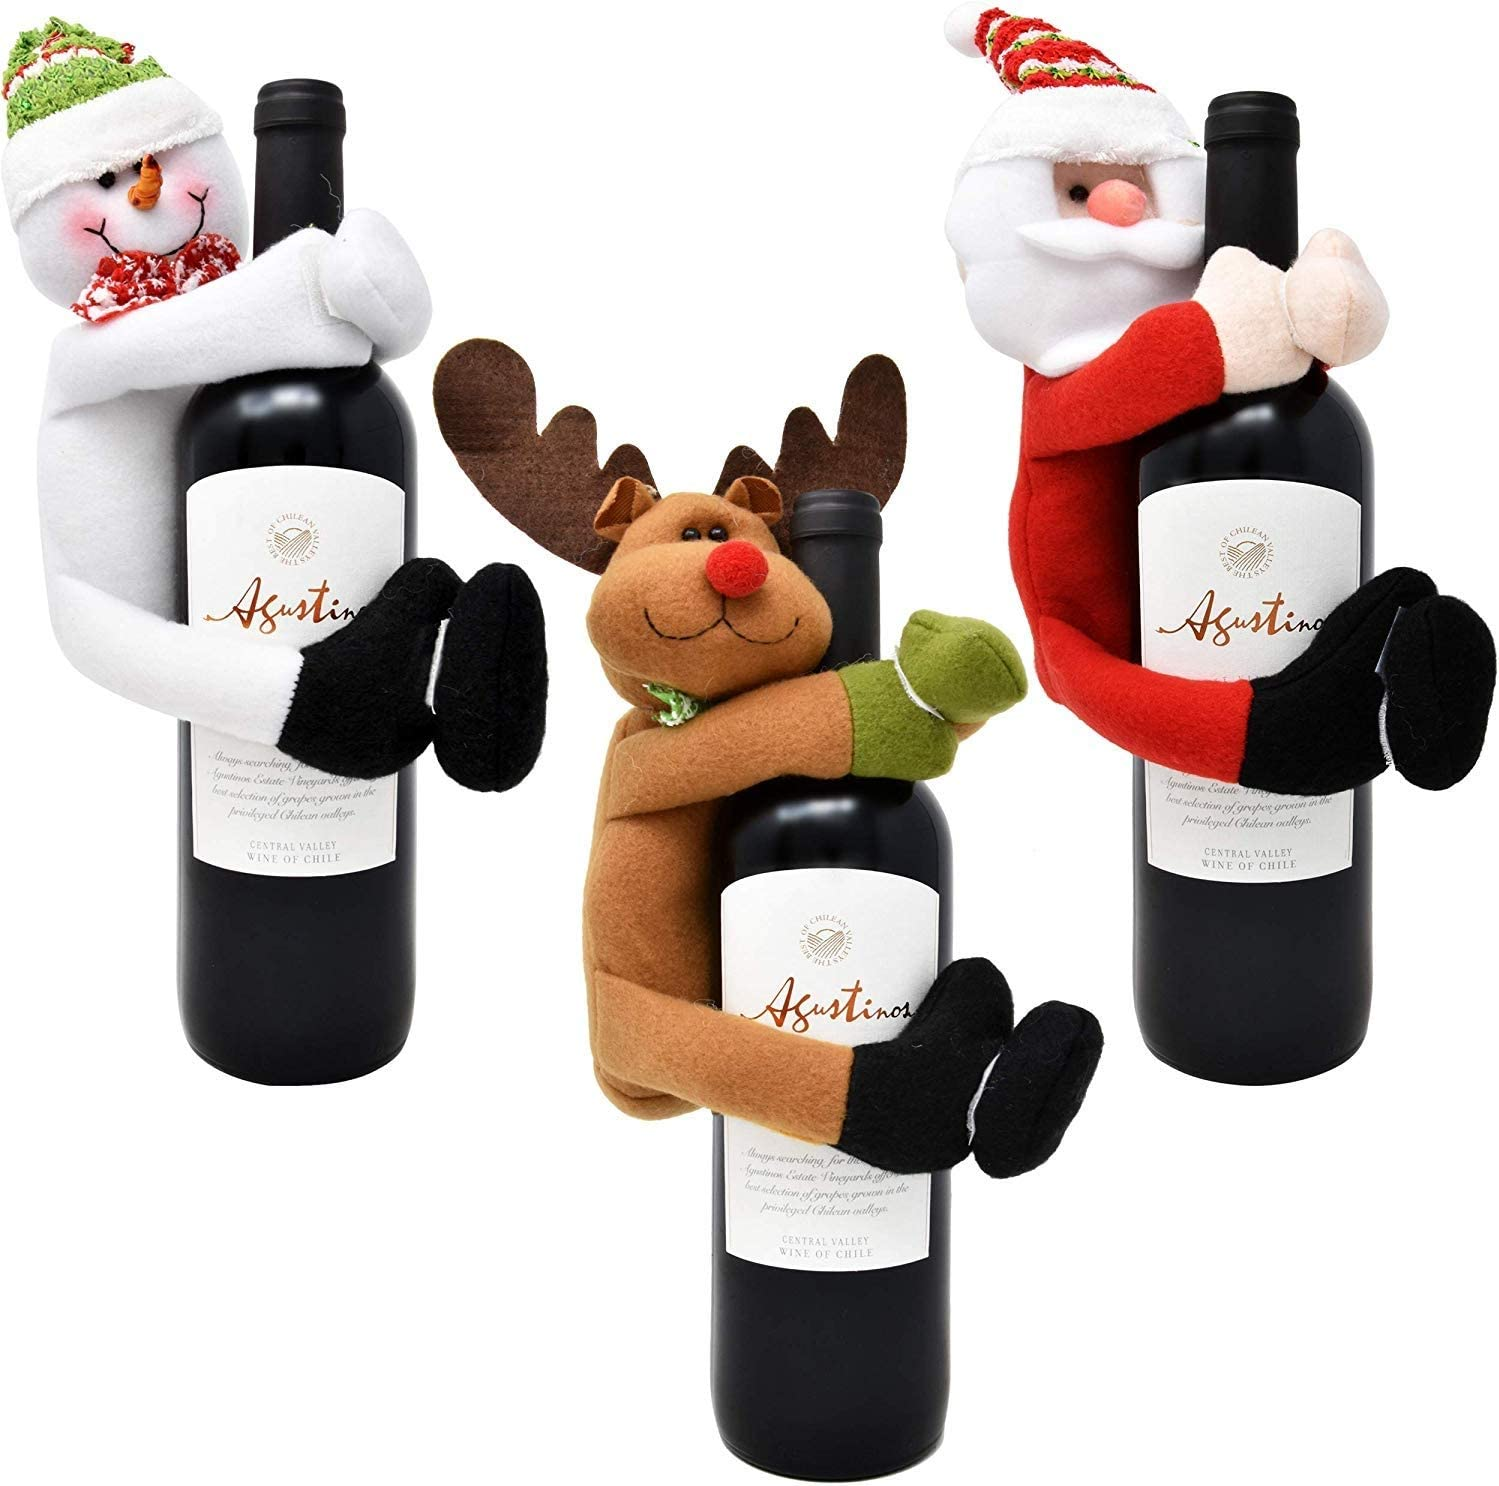 Gift Boutique Christmas Wine Bottle Cover Hugger Holder 3 Pack Santa Snowman and Reindeer Design for Home   Kitchen Holiday Party Table Decorations Gift Wrapping Supplies Accessories